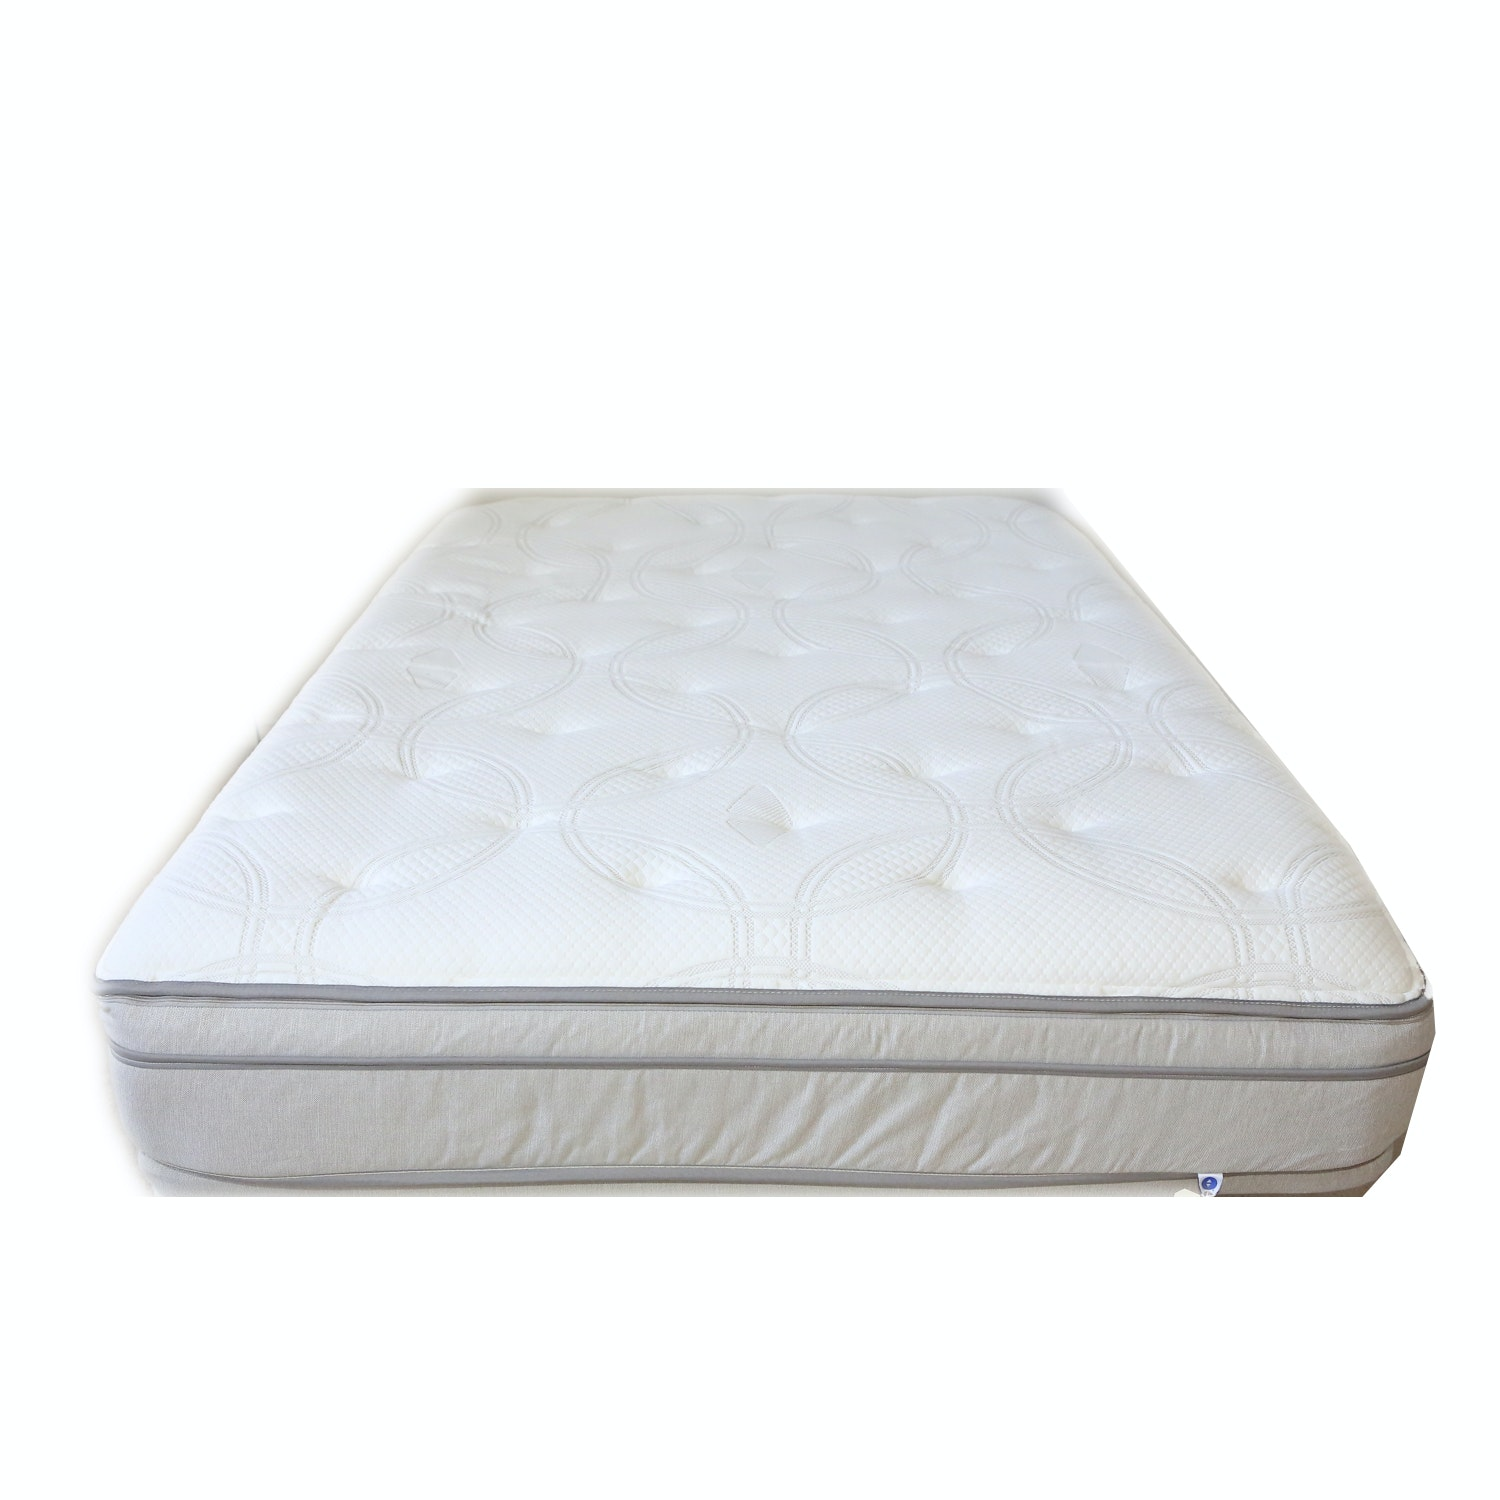 Full Size Sleep Number Mattress with Adjustable Frame